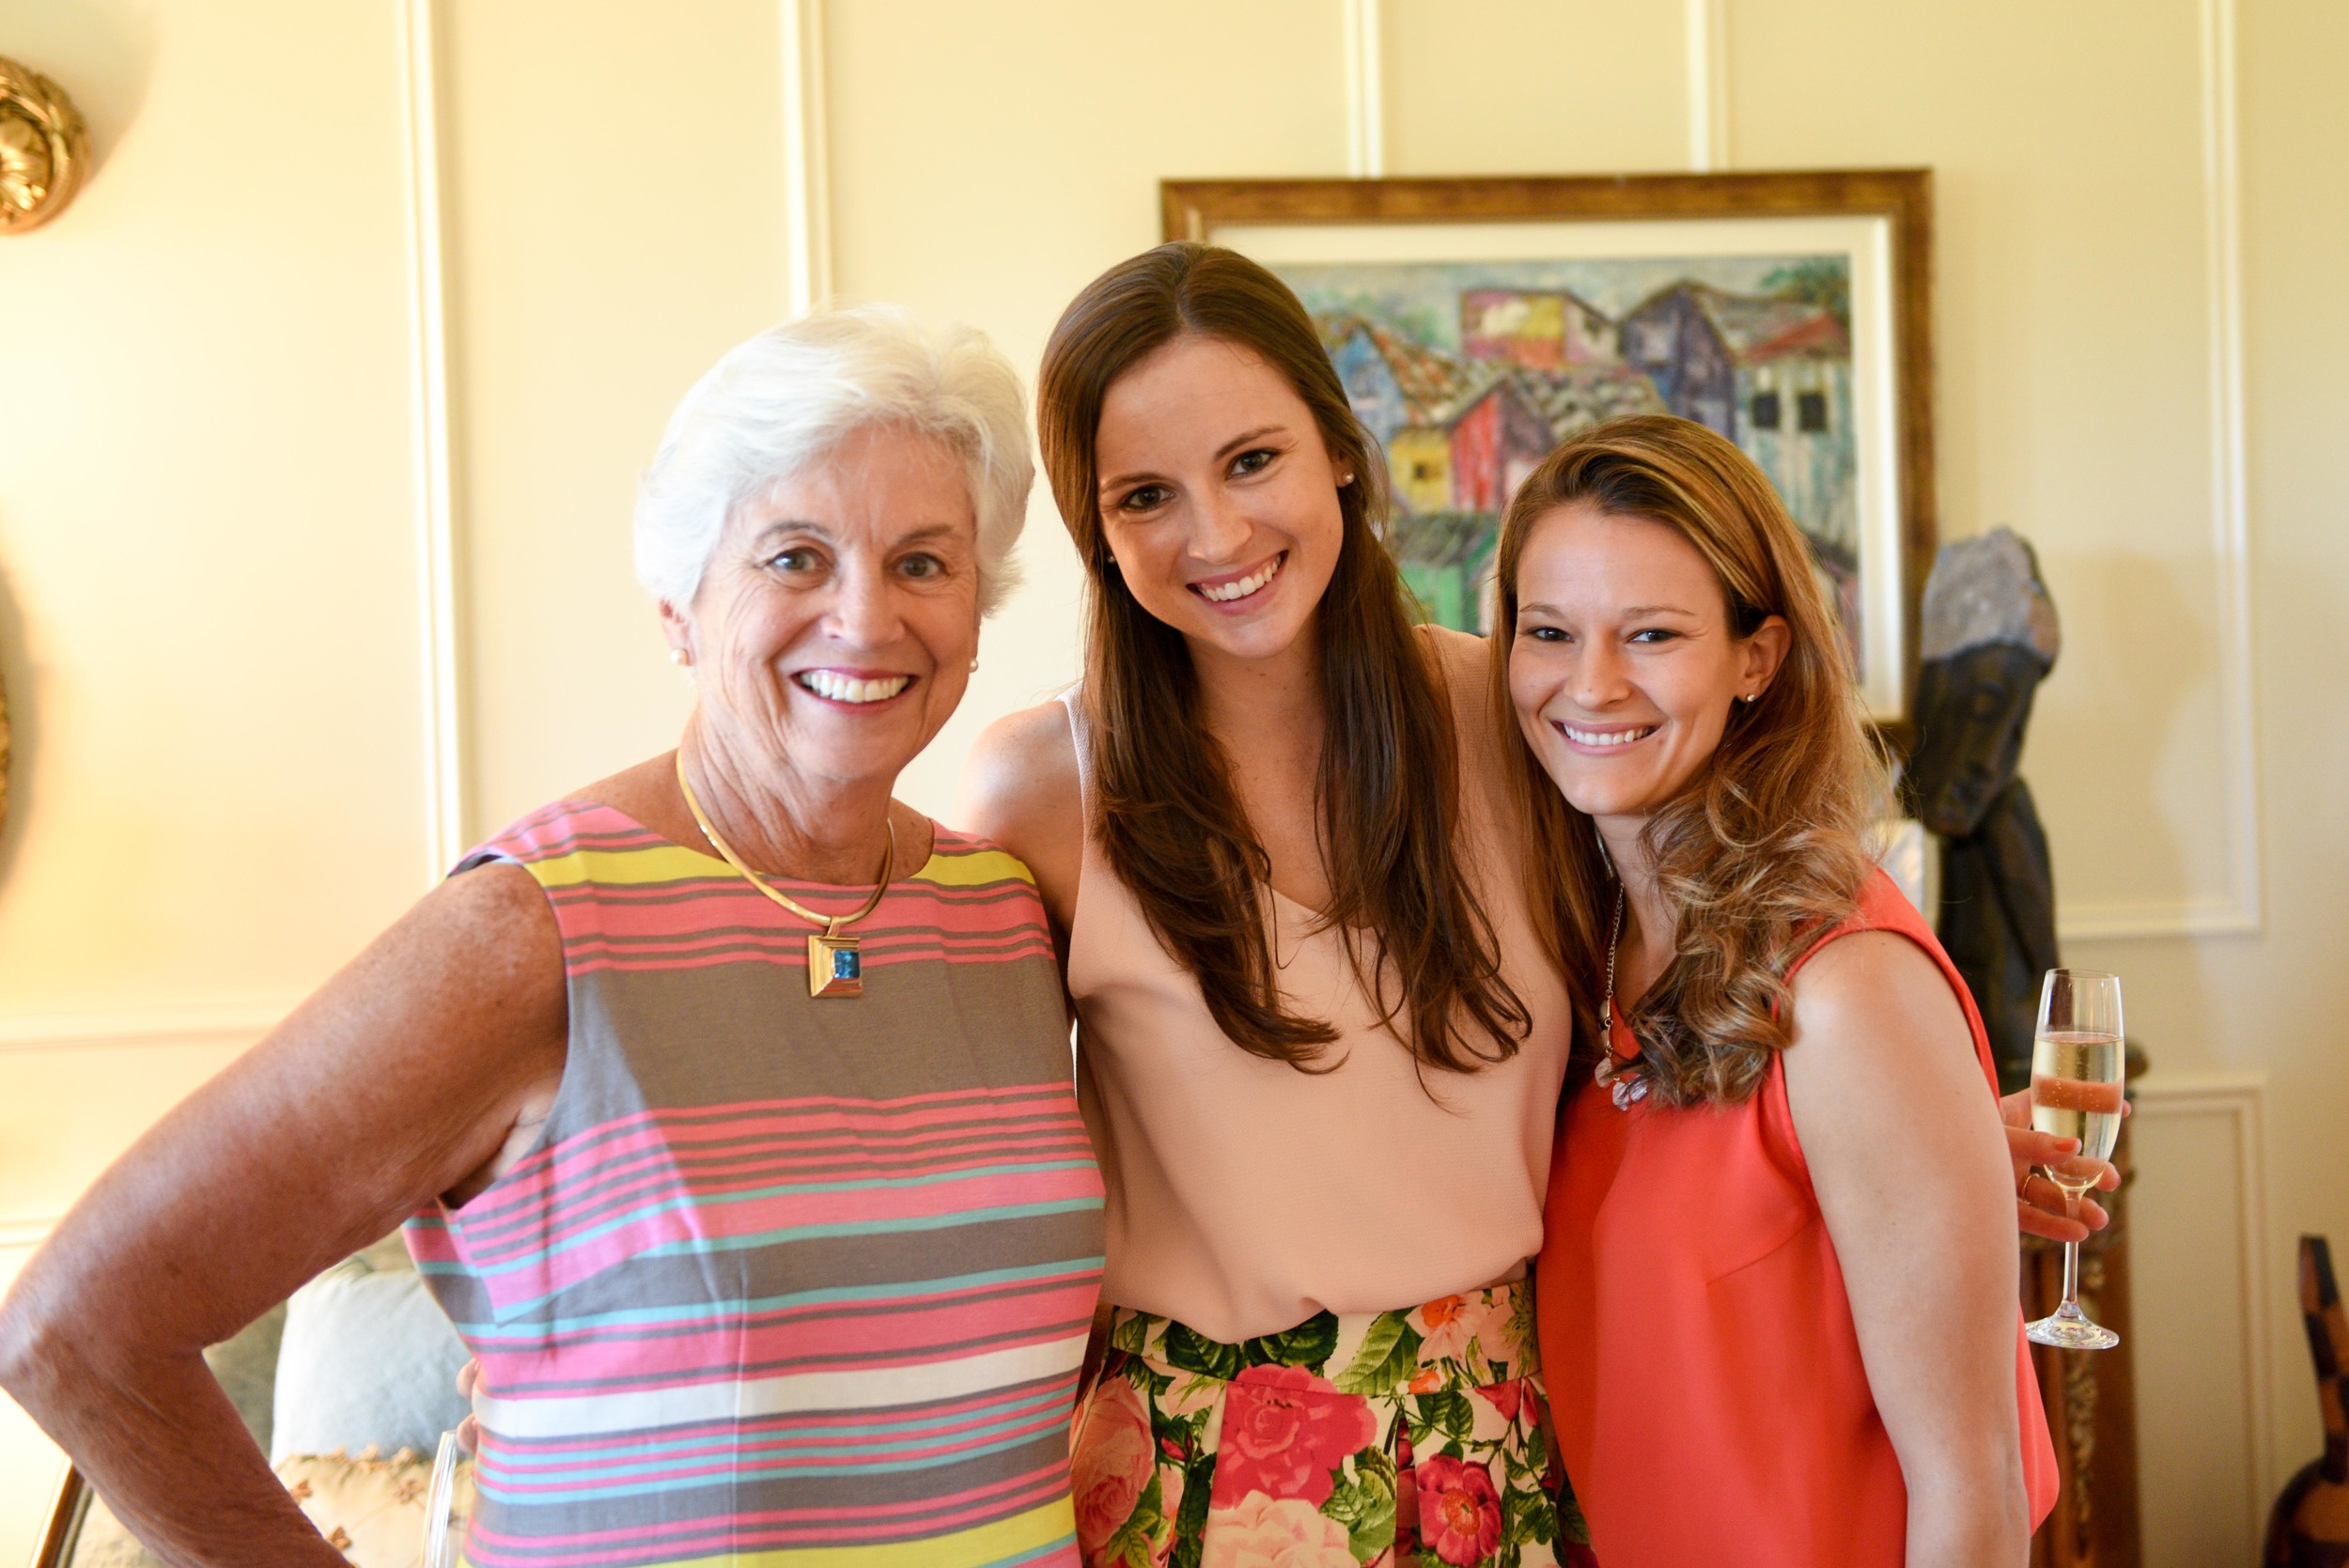 Bridal_Shower_CCaseyPhotography_44.jpg